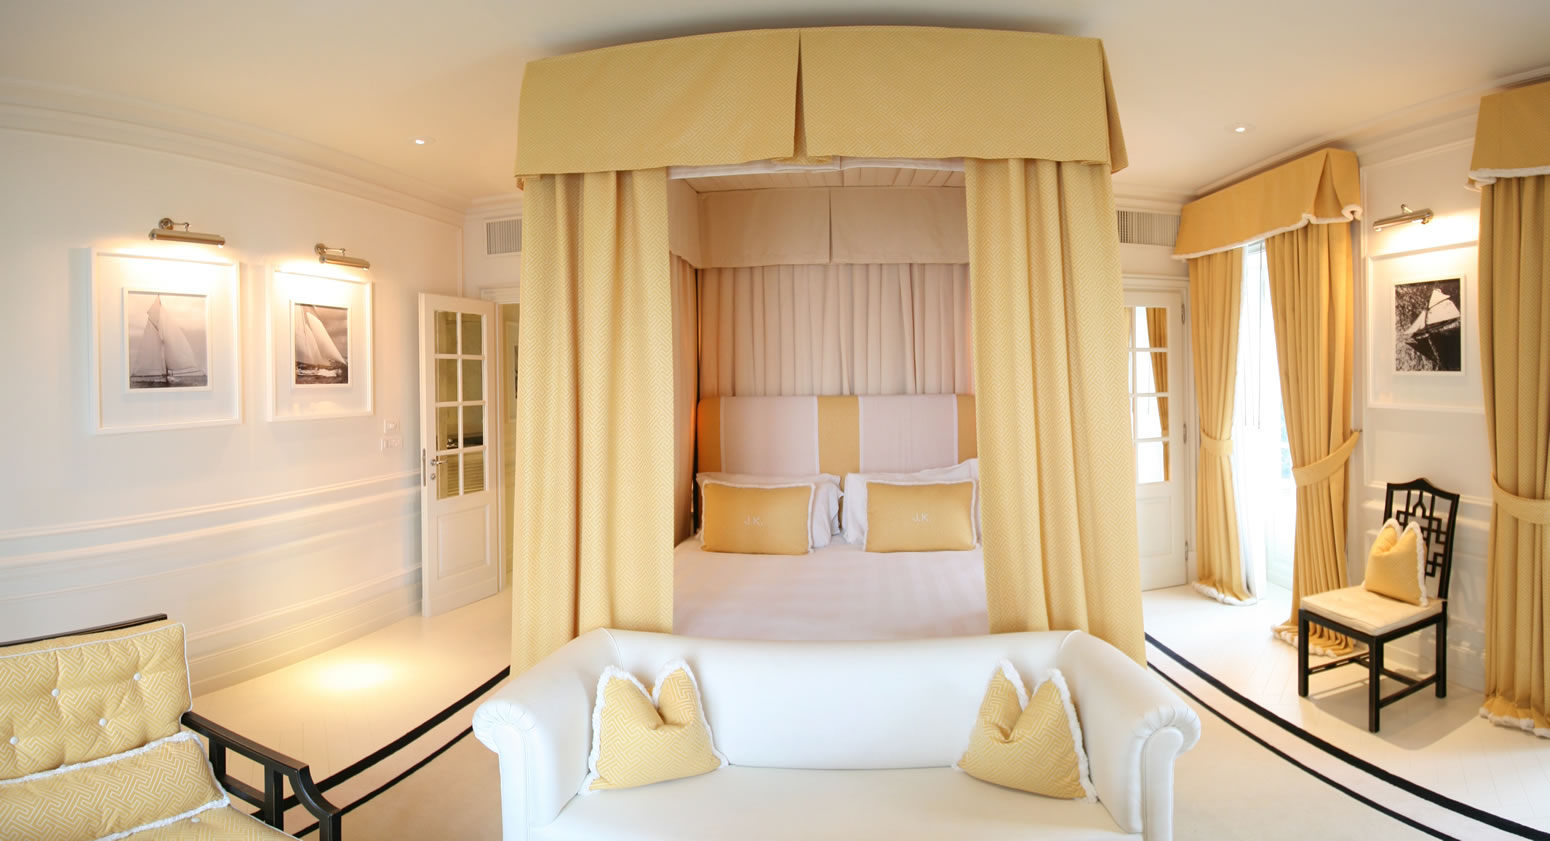 Luscious Travel Jk Place Hotel Capri Italy Interiors Inside Ideas Interiors design about Everything [magnanprojects.com]